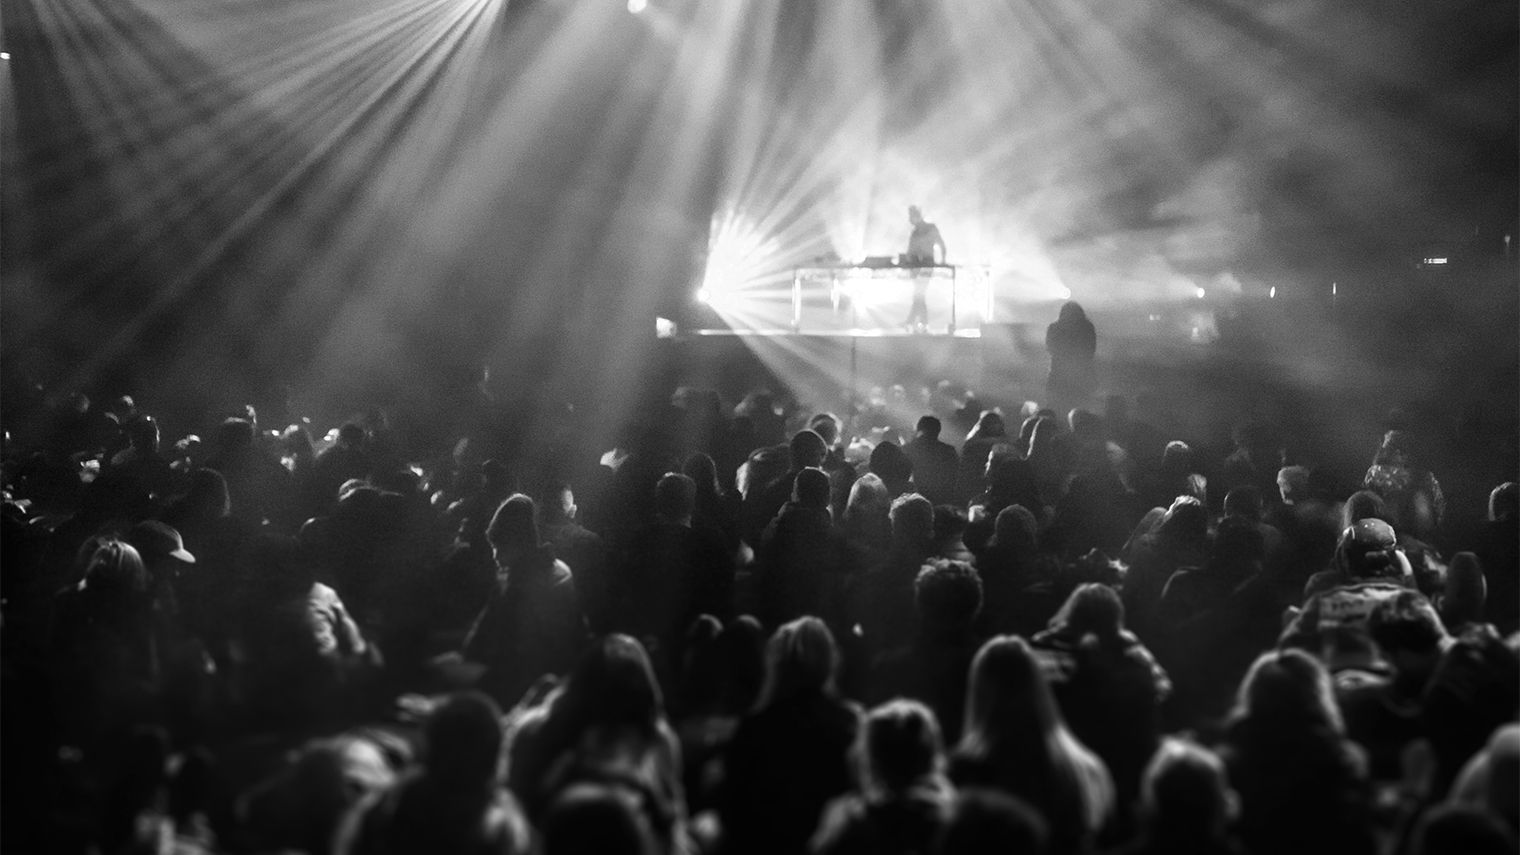 A large crowd surrounds a silhouetted figure on stage.